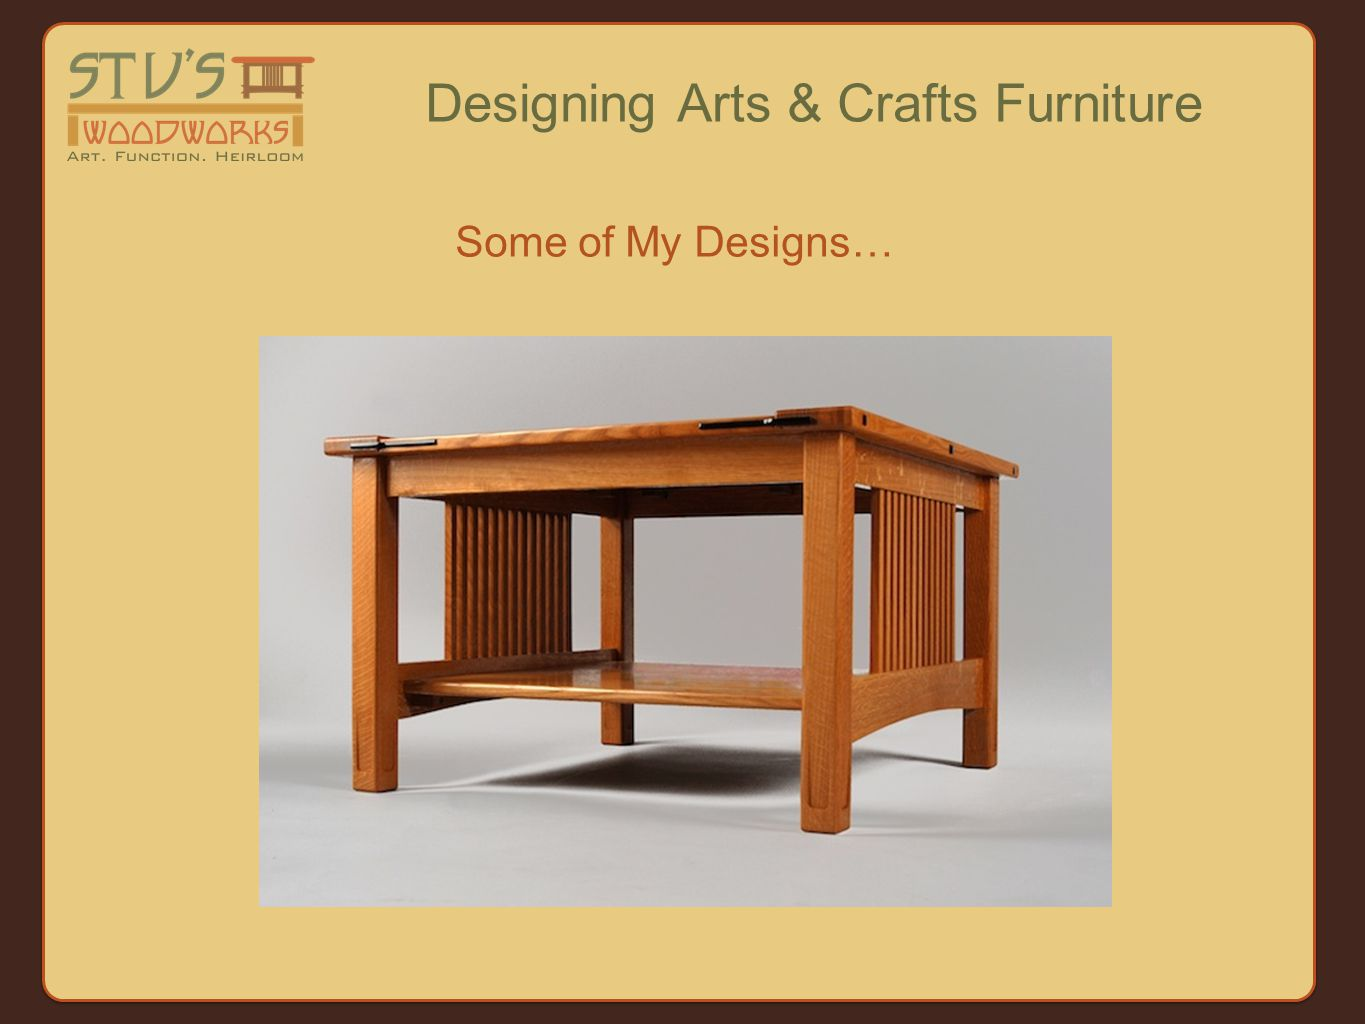 Some of My Designs… Designing Arts & Crafts Furniture